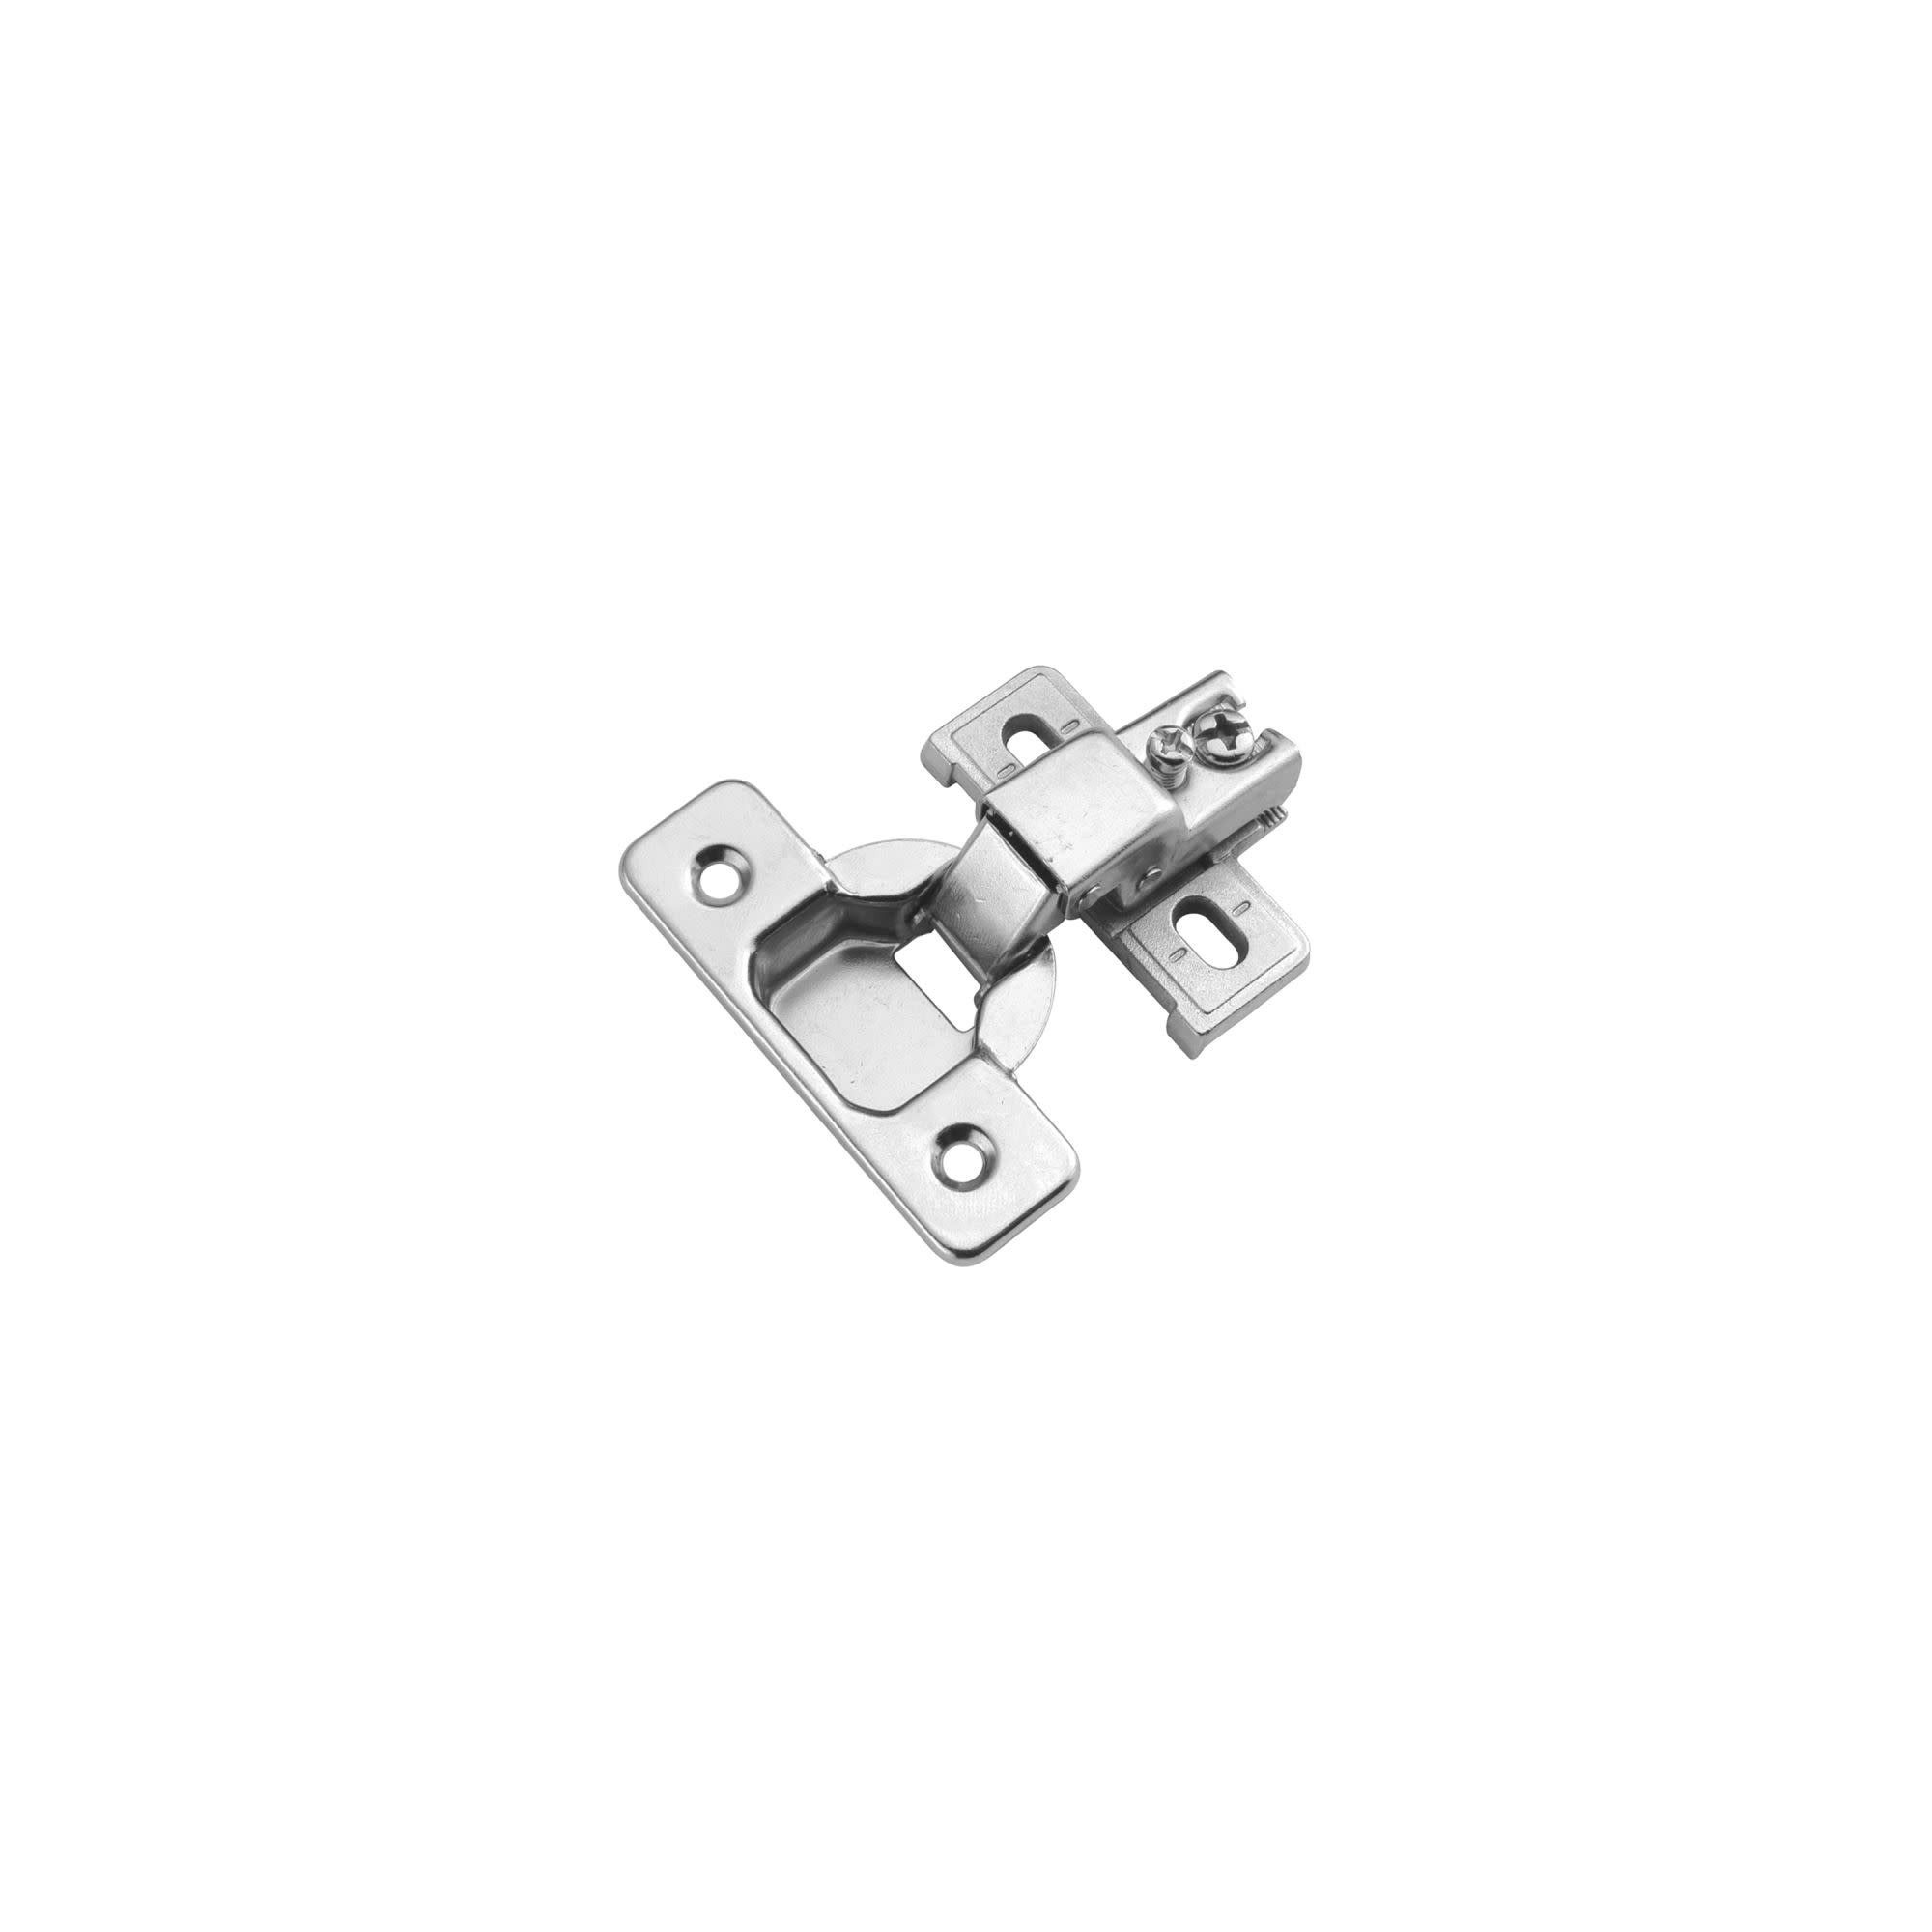 Hickory Hardware P5124 1 2 Overlay Screw On Concealed European Cabinet Door Hinge With 105 Degree Opening Angle Hickory Hardware Door Hinges European Cabinets